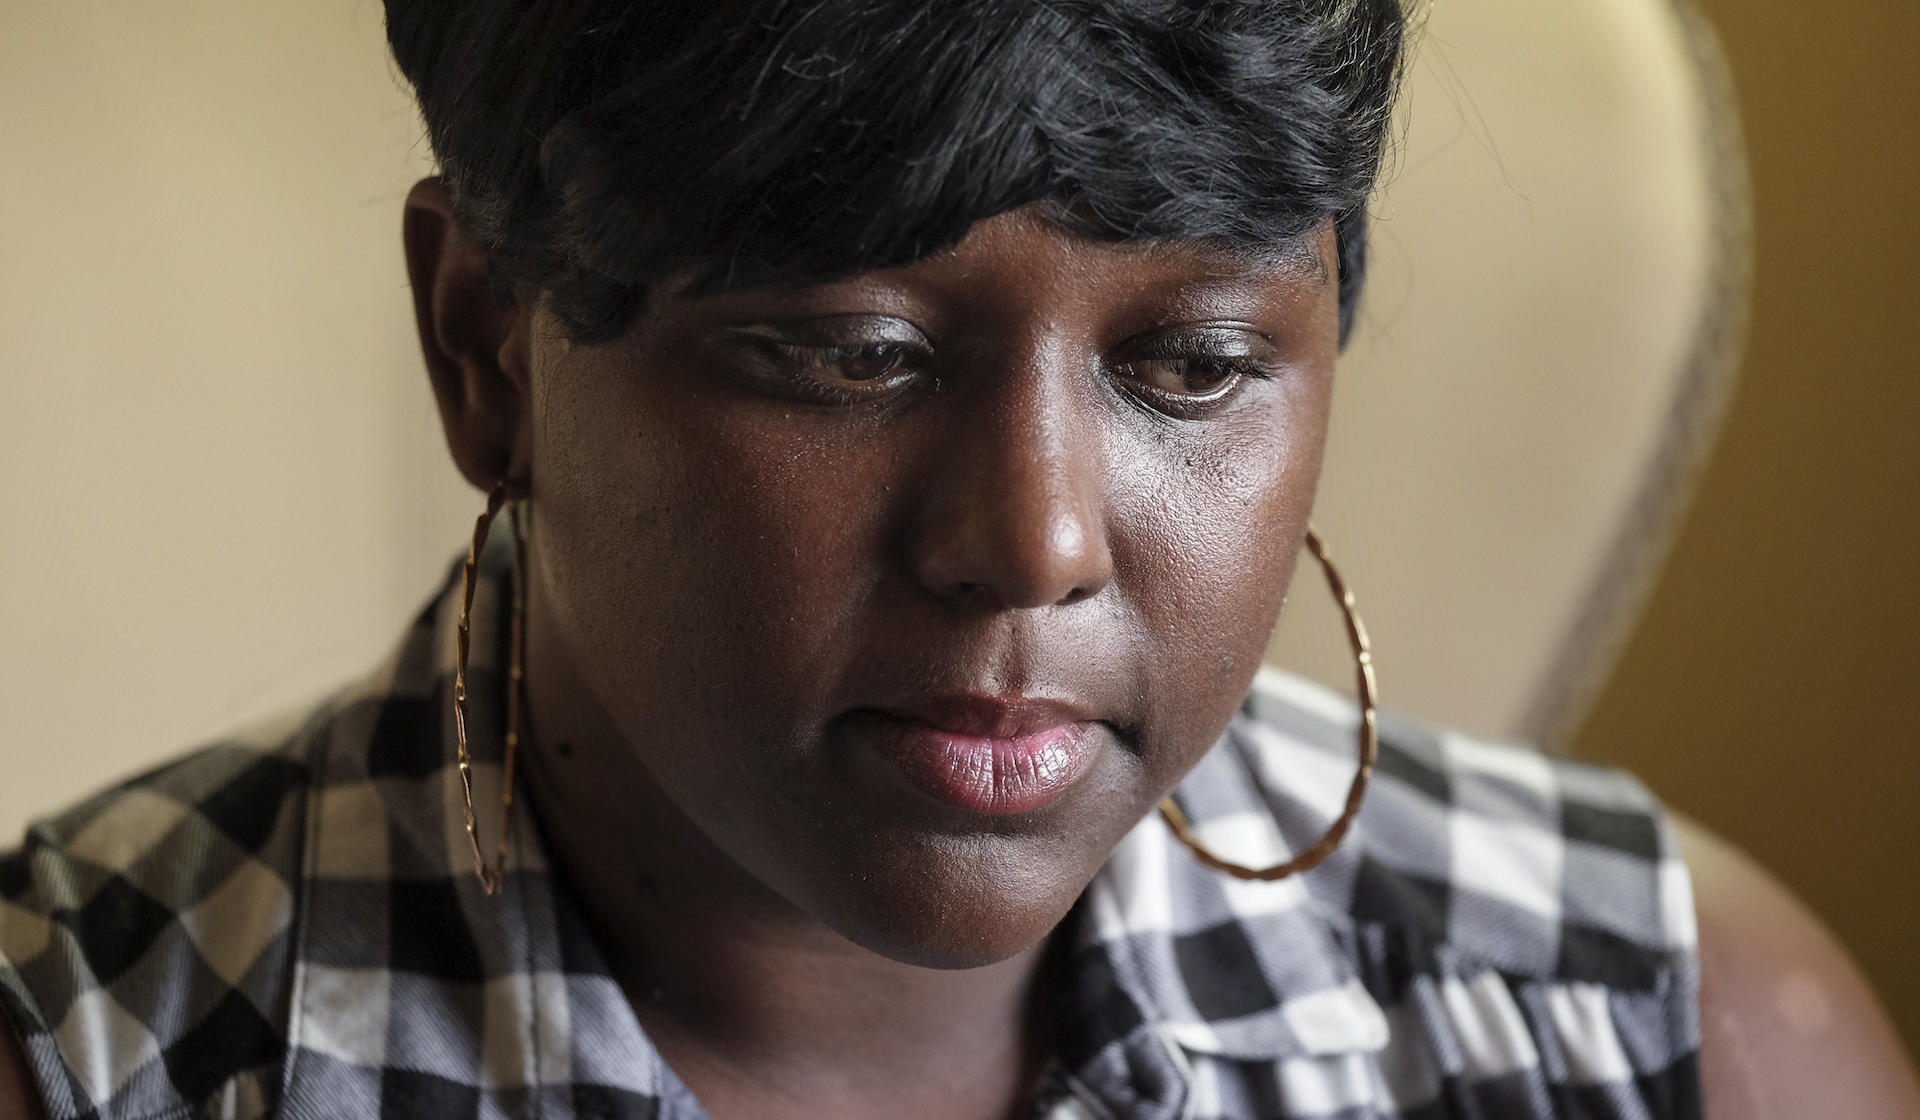 Alton Sterling's relatives weather scrutiny, call for justice